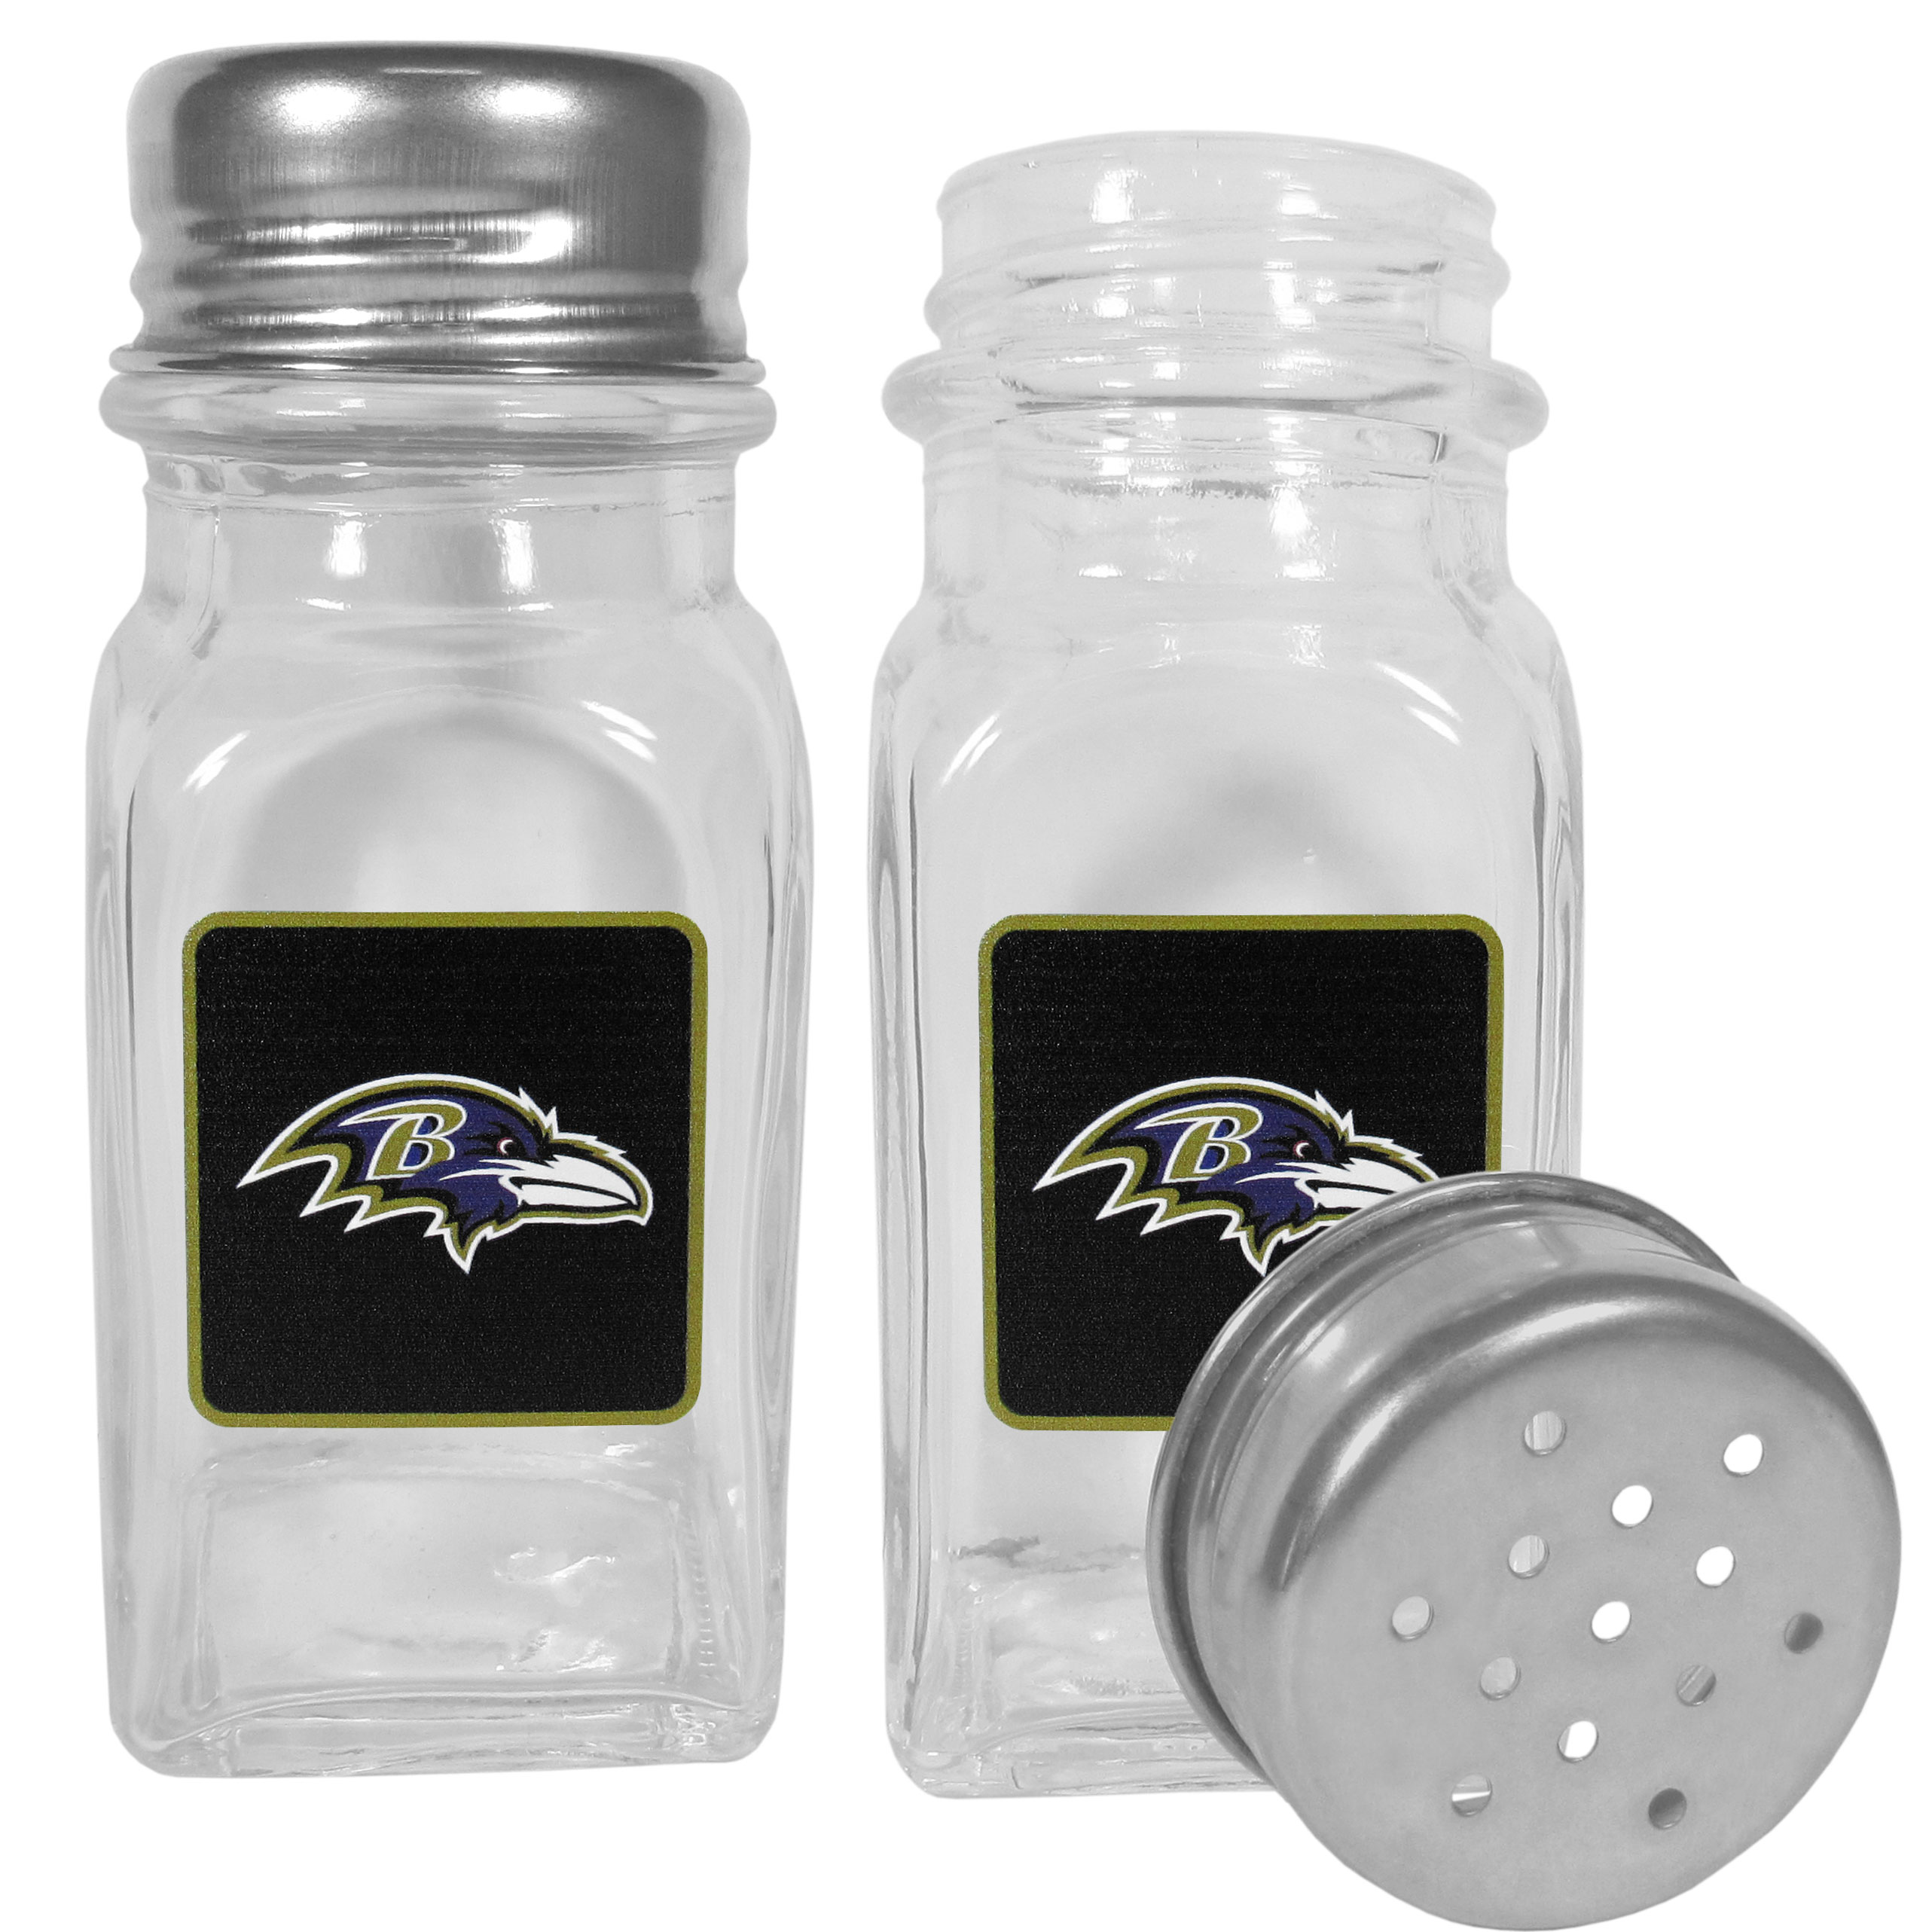 Baltimore Ravens Graphics Salt & Pepper Shaker - No tailgate party is complete without your Baltimore Ravens salt & pepper shakers featuring bright team logos. The diner replica salt and pepper shakers are glass with screw top lids. These team shakers are a great grill accessory whether you are barbecuing on the patio, picnicing or having a game day party.